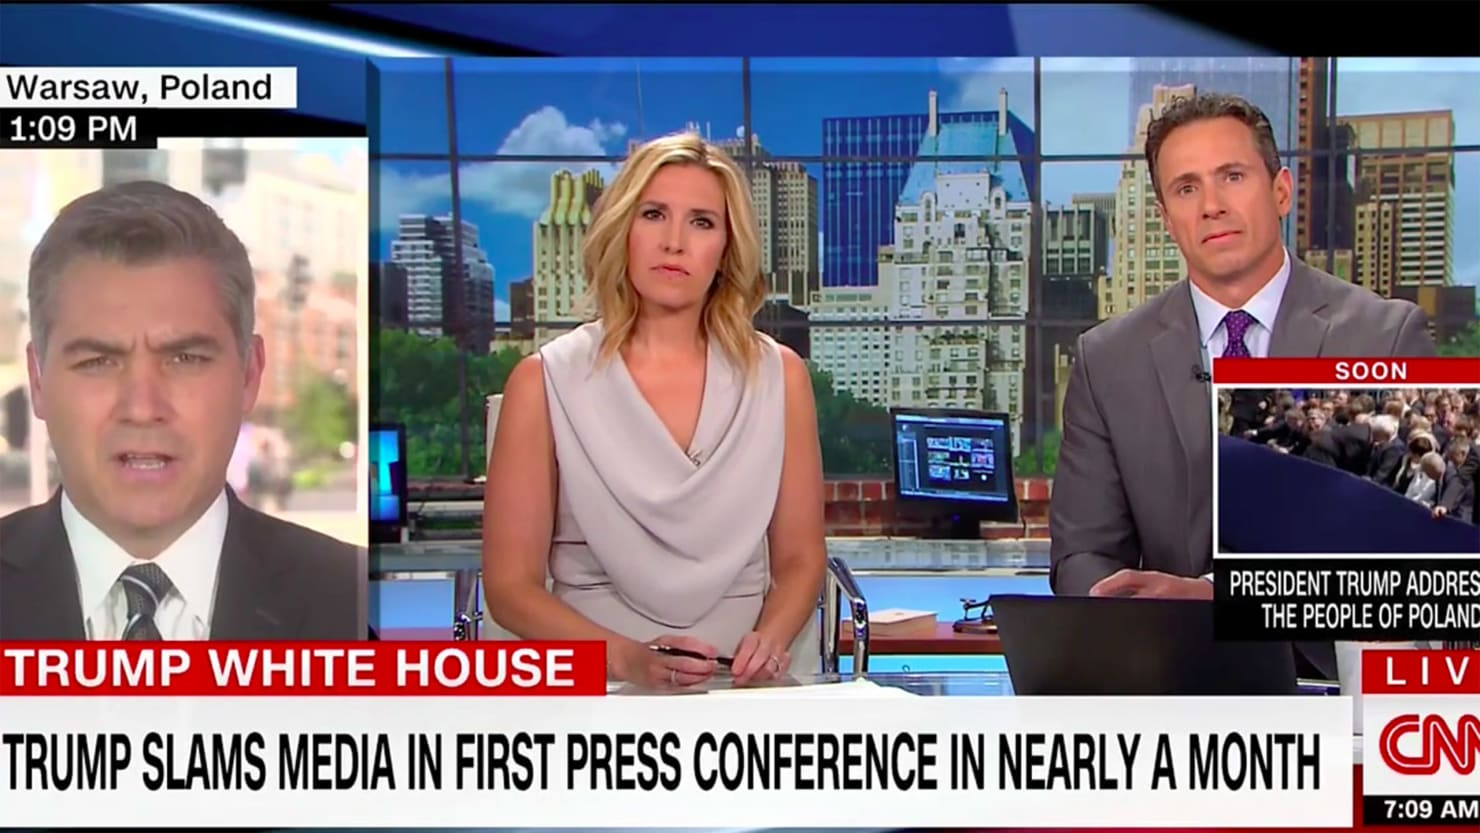 CNN World News Picture: CNN Fires Back At Trump's 'Fake News Conference' In Poland